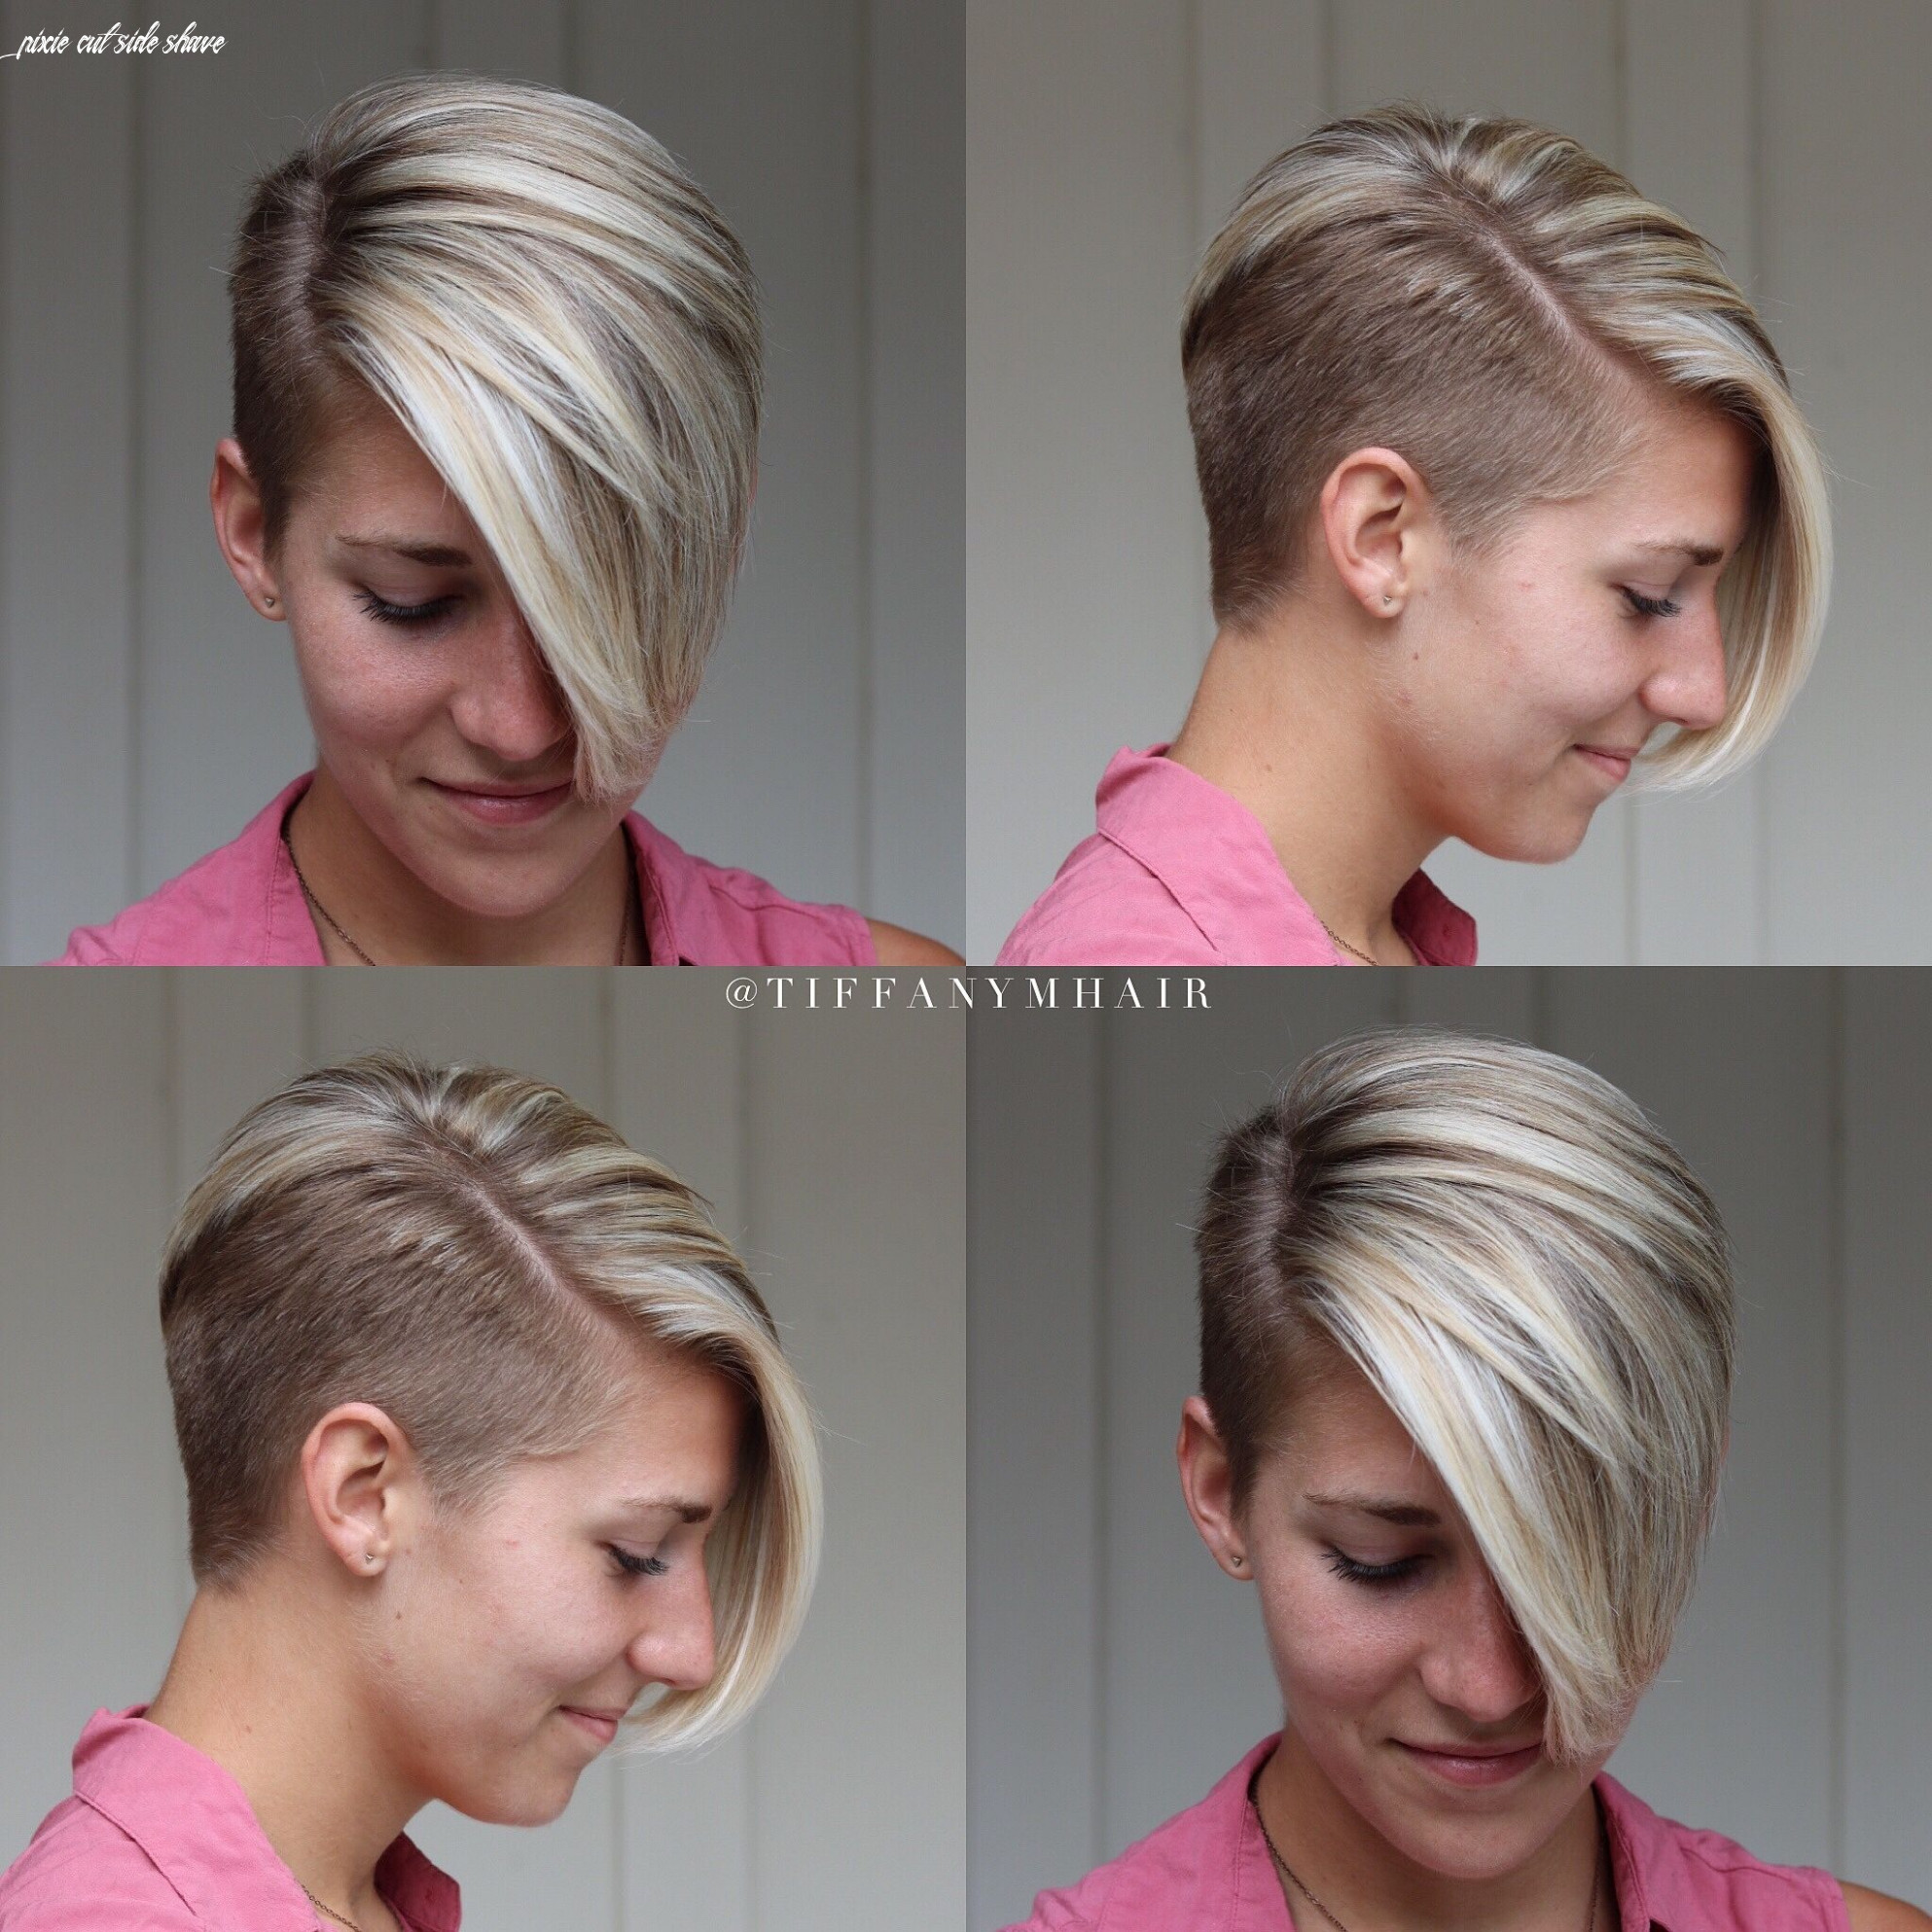 Short side shave | Short shaved hairstyles, Half shaved hair, Very ...